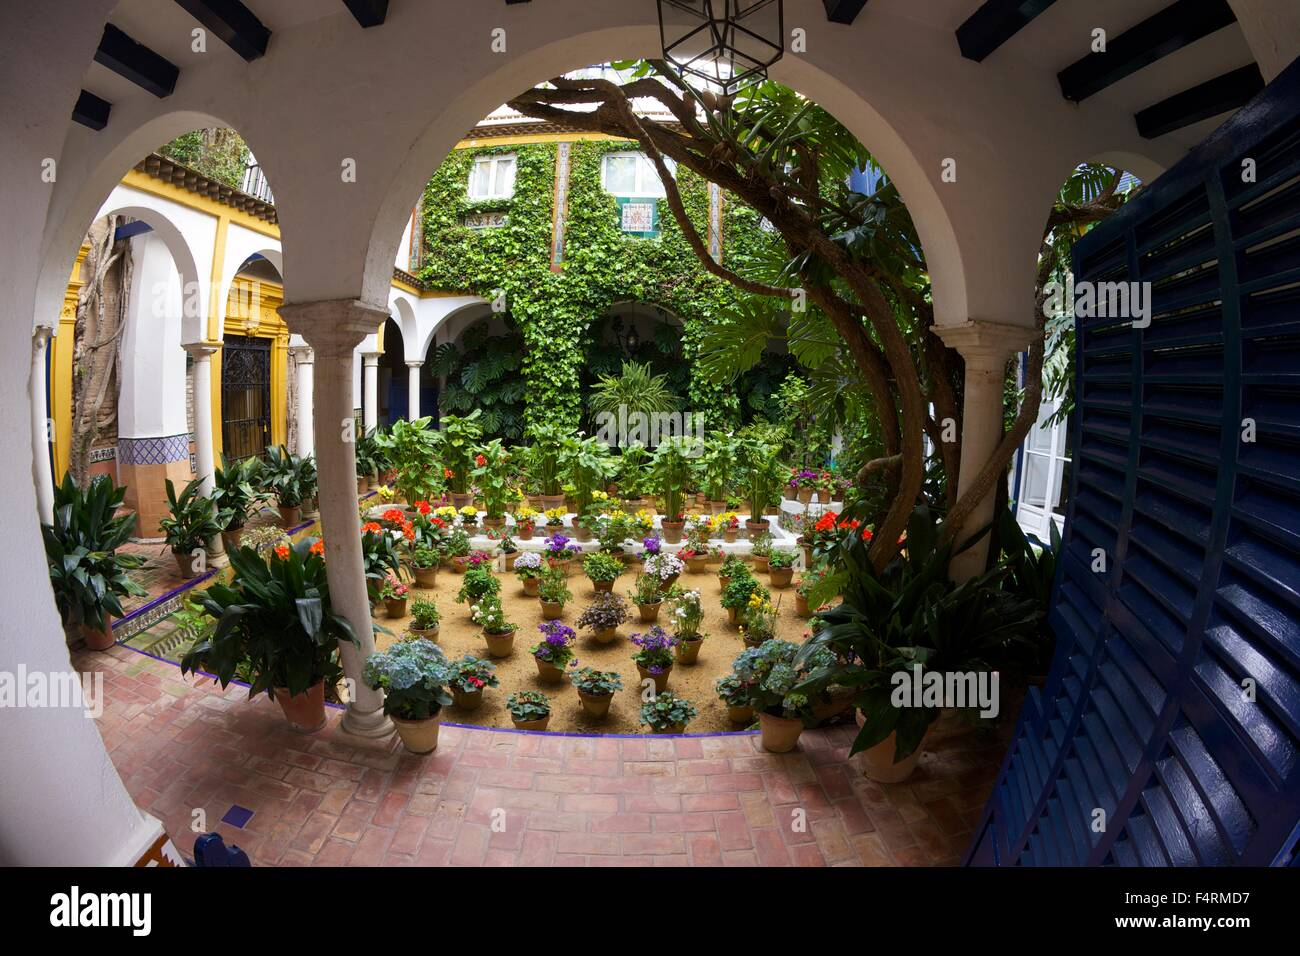 Courtyard garden, Seville, Andalucia, Spain, Europe - Stock Image